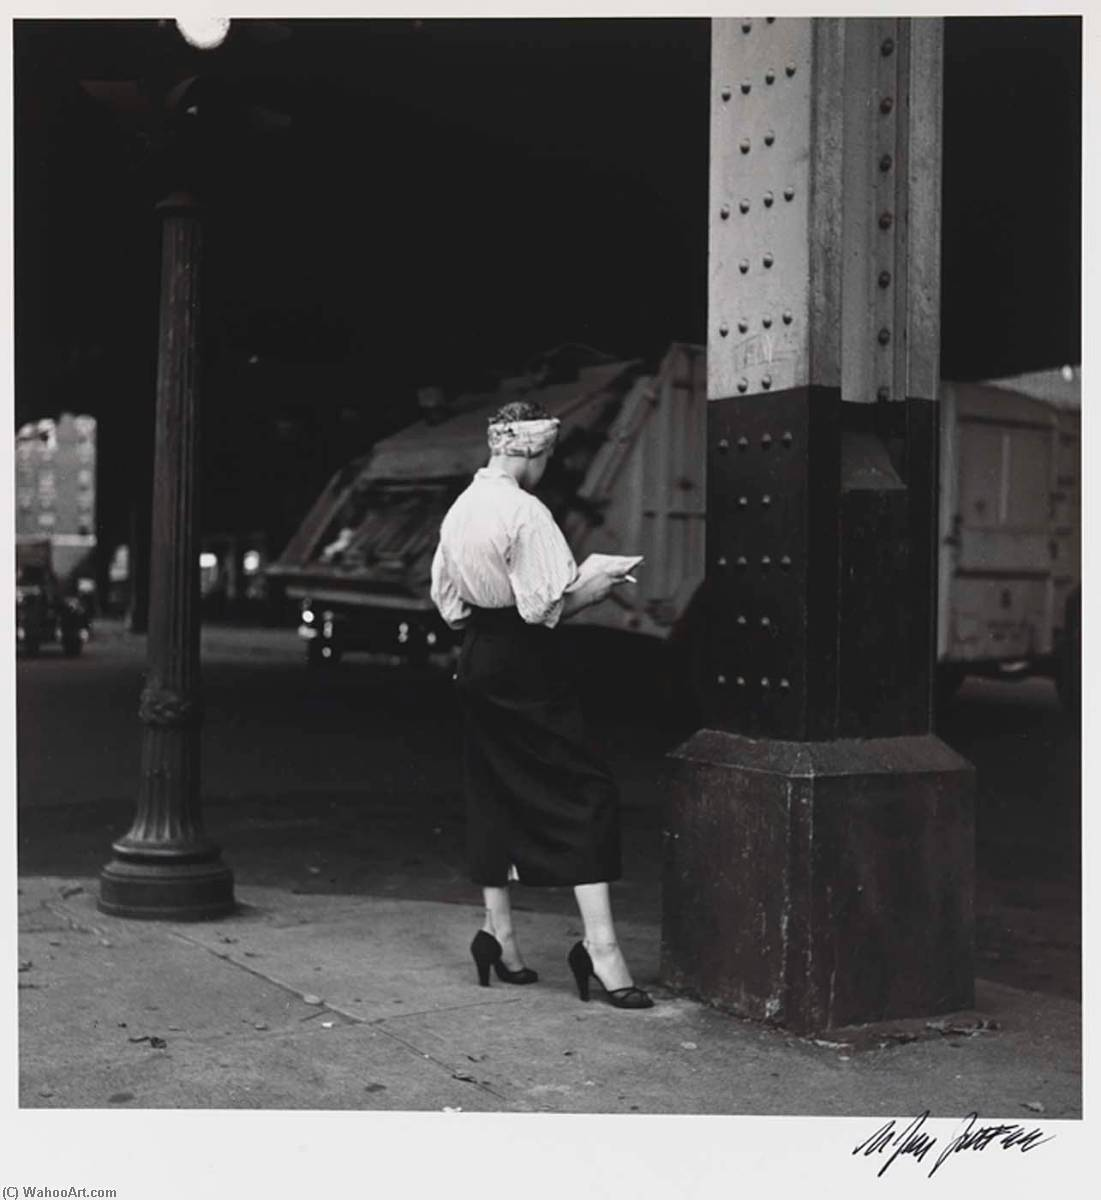 Woman Reading Paper Under the El, 1990 by Nathan Jay Jaffee | Museum Art Reproductions Nathan Jay Jaffee | WahooArt.com